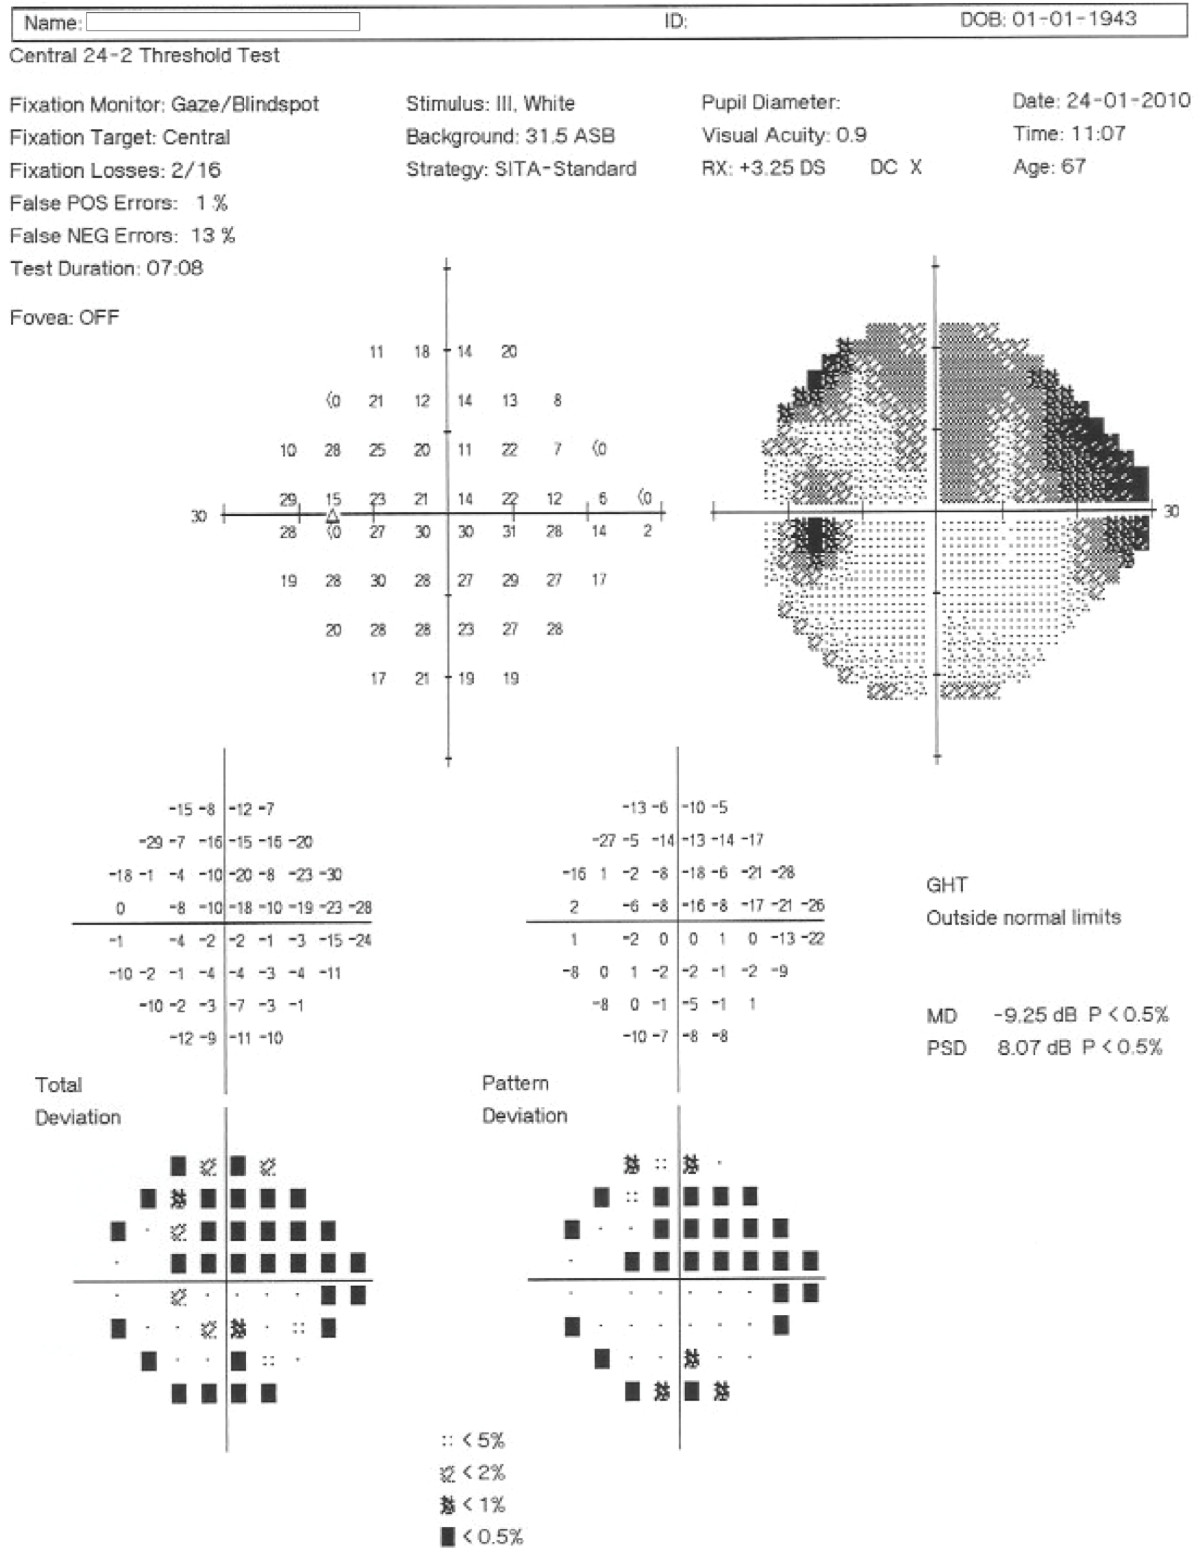 https://static-content.springer.com/image/art%3A10.1186%2F1471-2415-12-54/MediaObjects/12886_2012_Article_281_Fig1_HTML.jpg